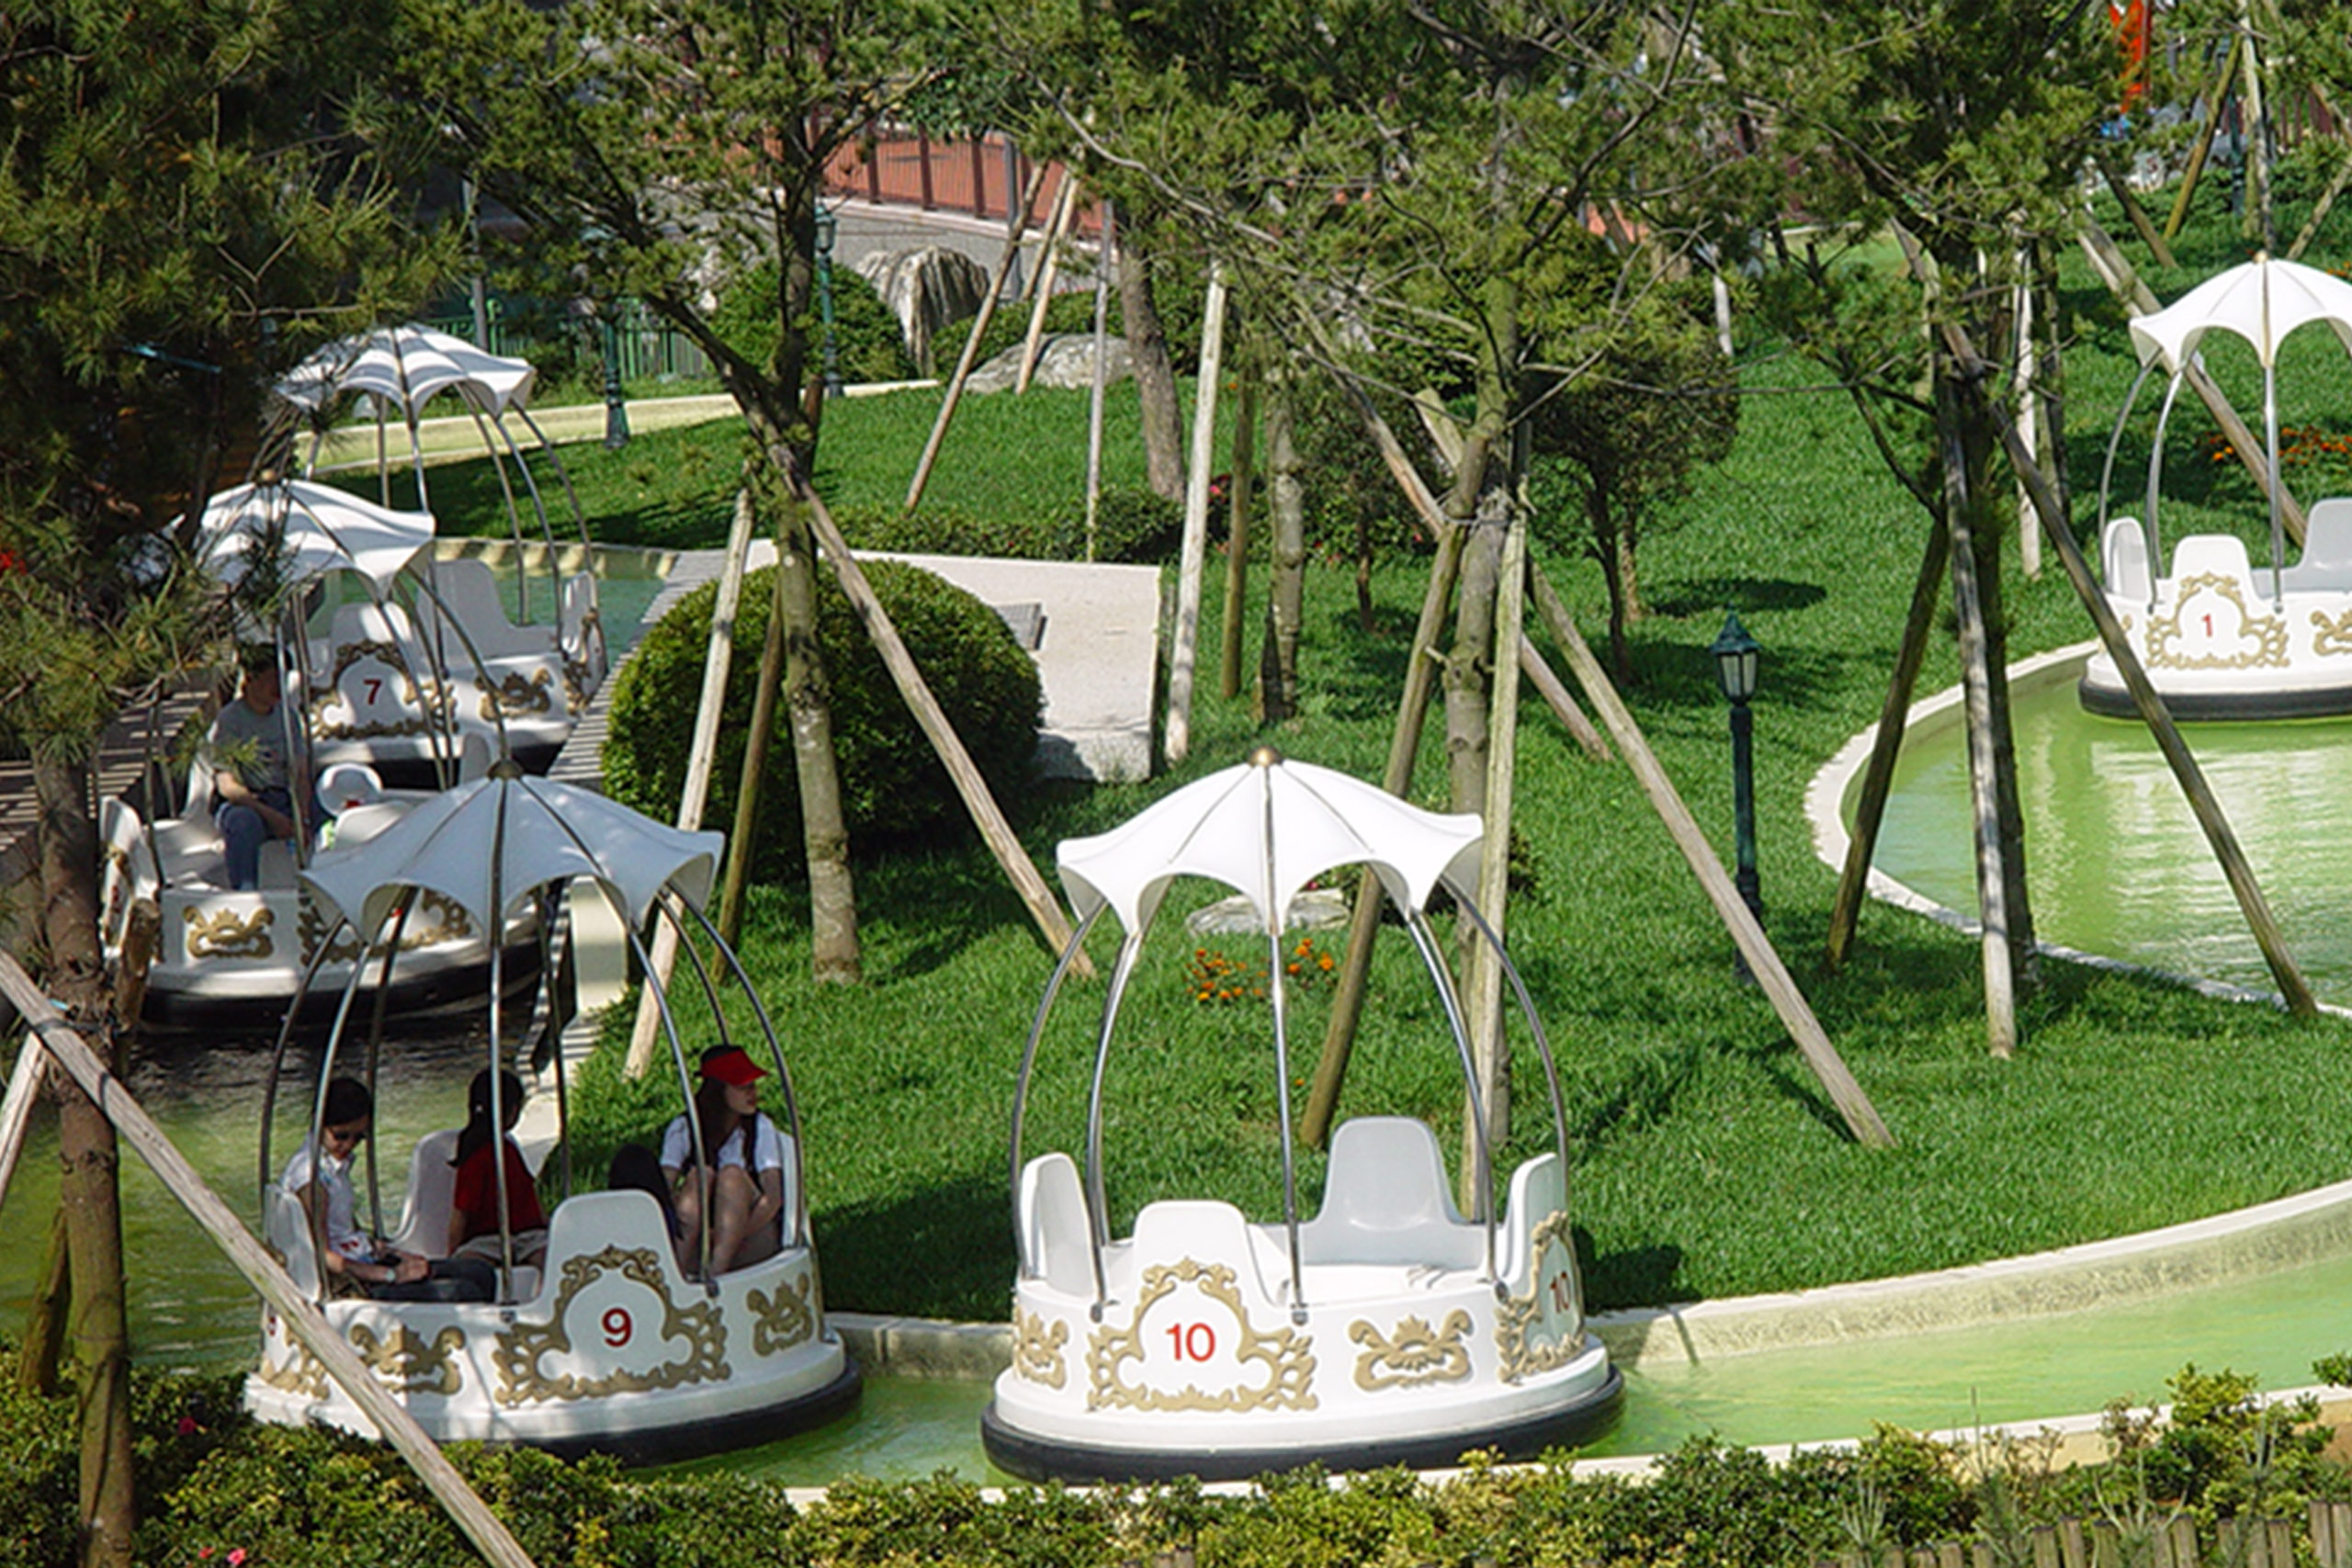 Interlink New Ride : Spin Boat Garden Boats at Lihpao Land 4